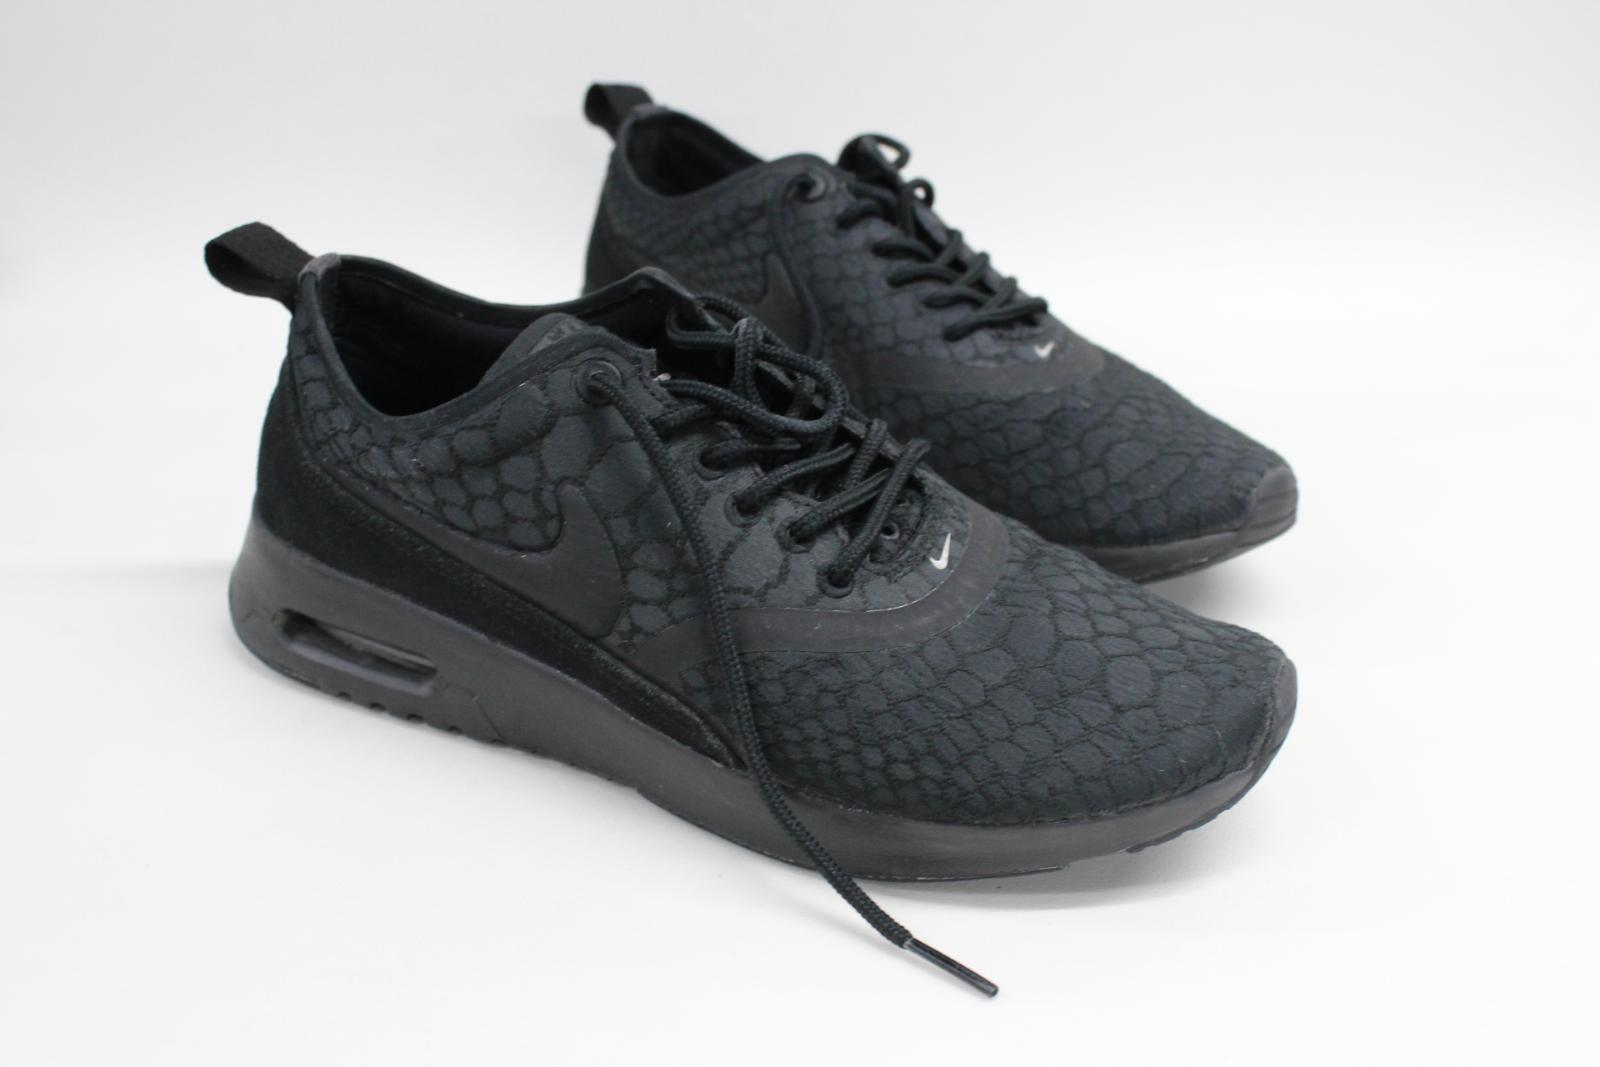 Nike-Air-Max-Thea-Ultra-Femmes-Baskets-noir-sportswear-Taille-UK4-5-EU38 miniature 2